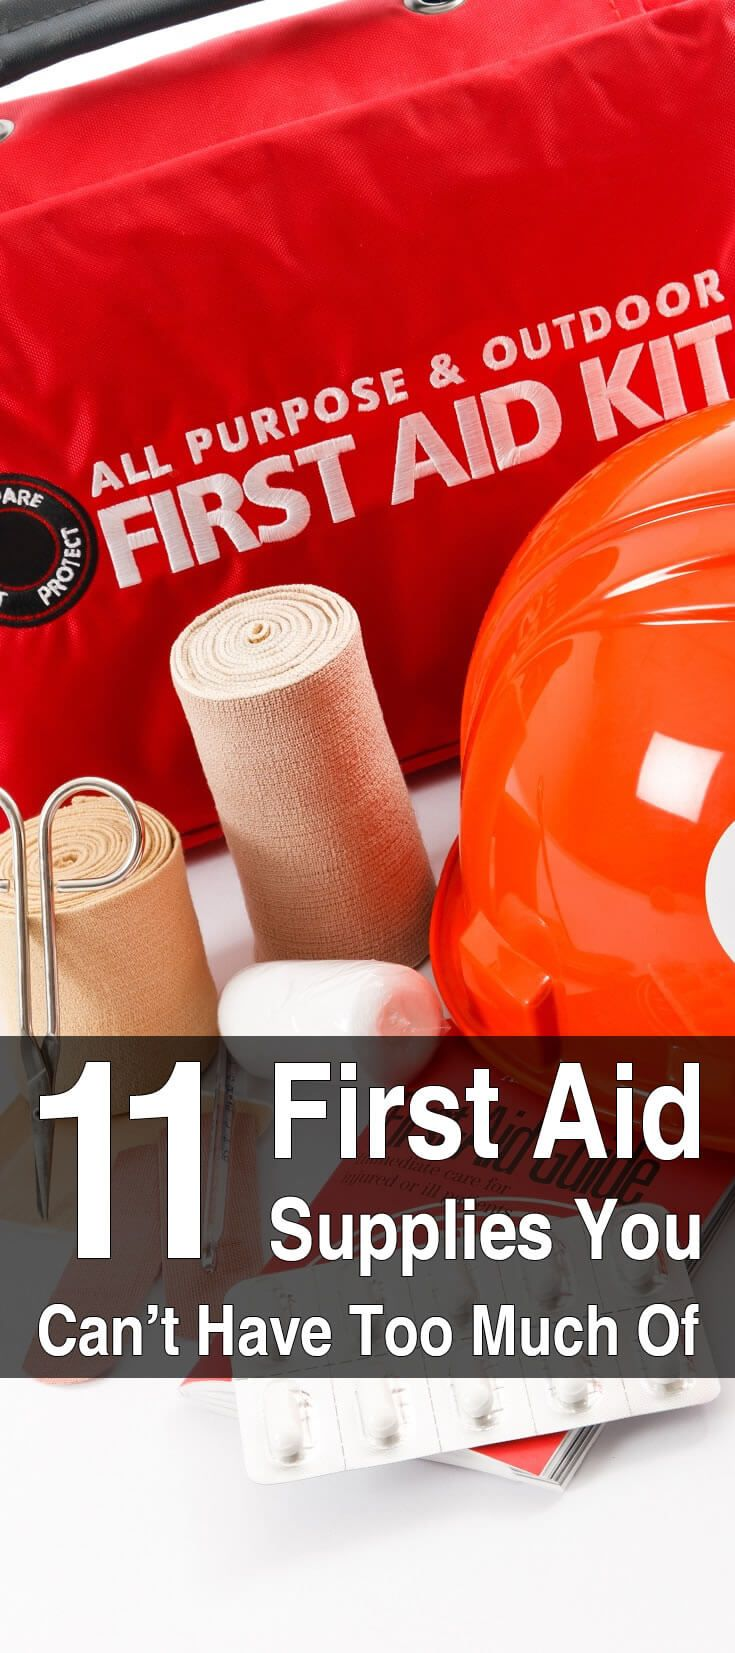 Many first aid supplies such as medication and bandages are not reusable, meaning that you will want to have ample stocks of these crucial items.